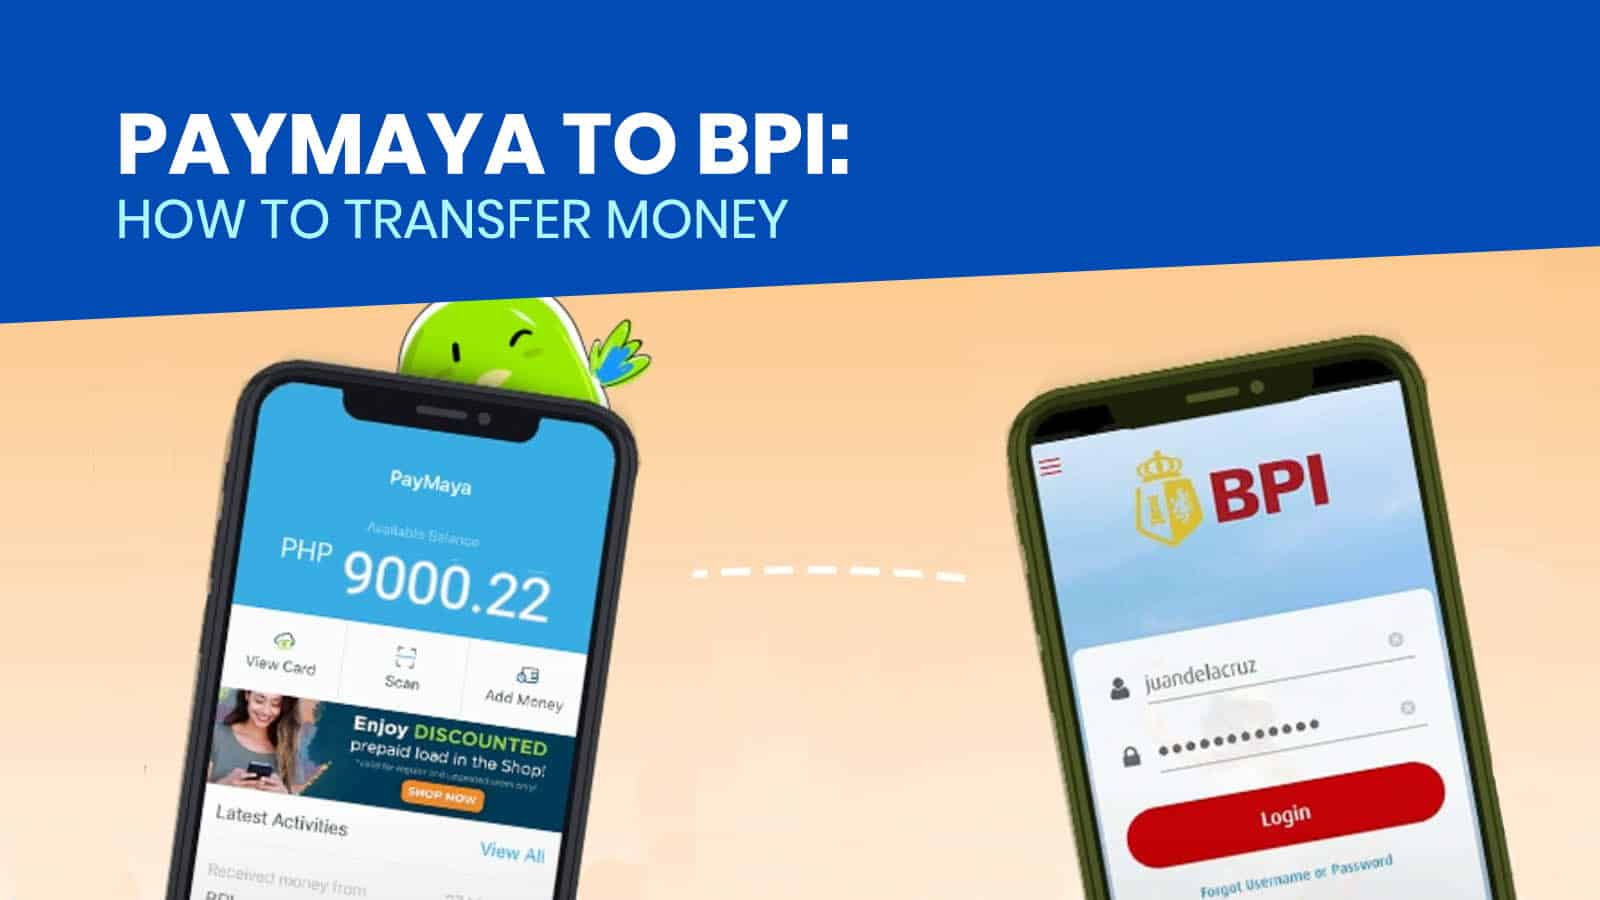 PAYMAYA TO BPI: How to Transfer Money via PayMaya App